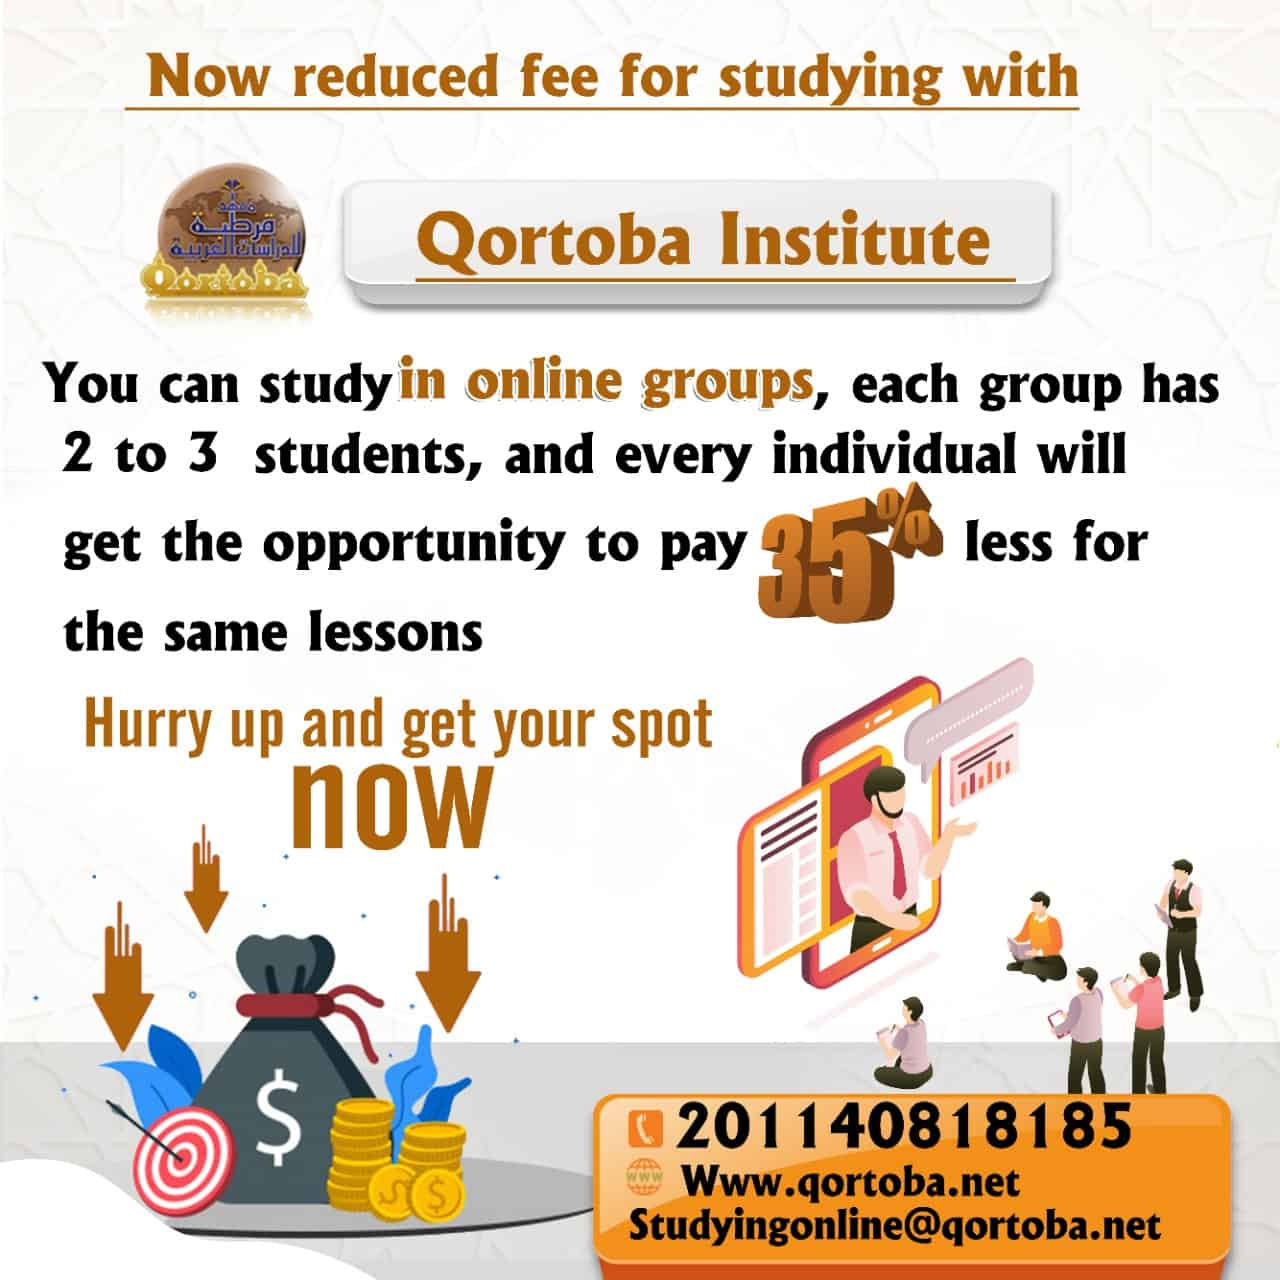 Now reduced fee for studying with qortoba institute